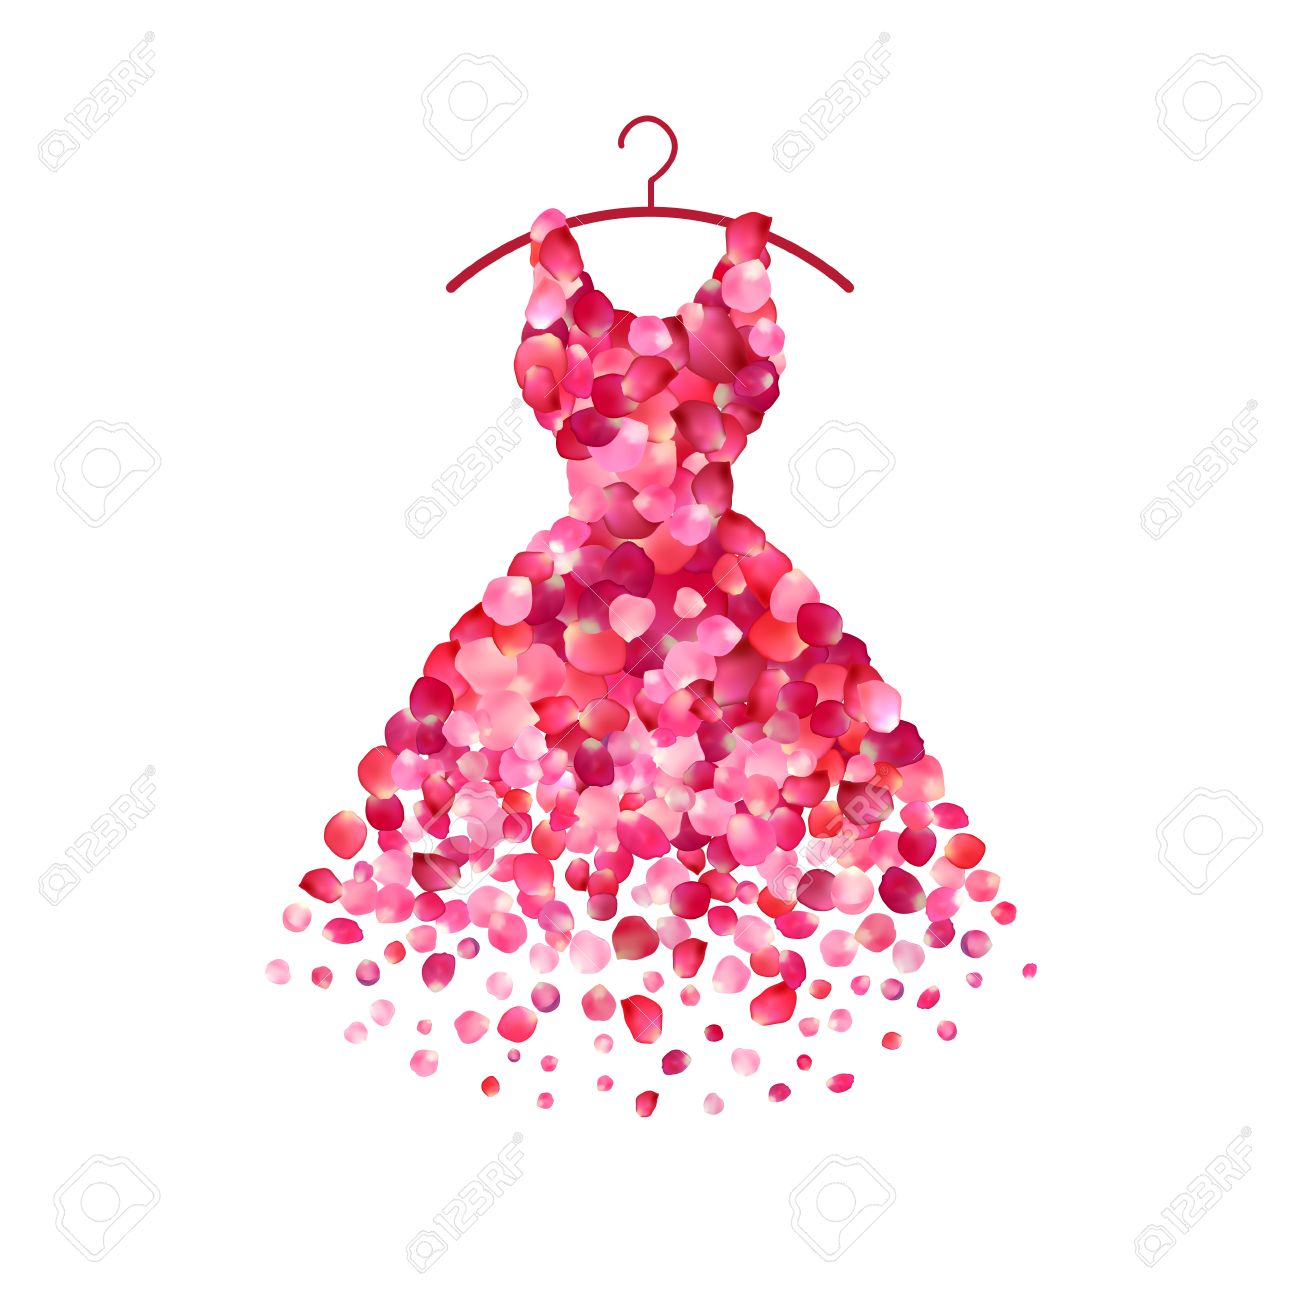 Dress of pink rose petals. Vector icon - 66797801